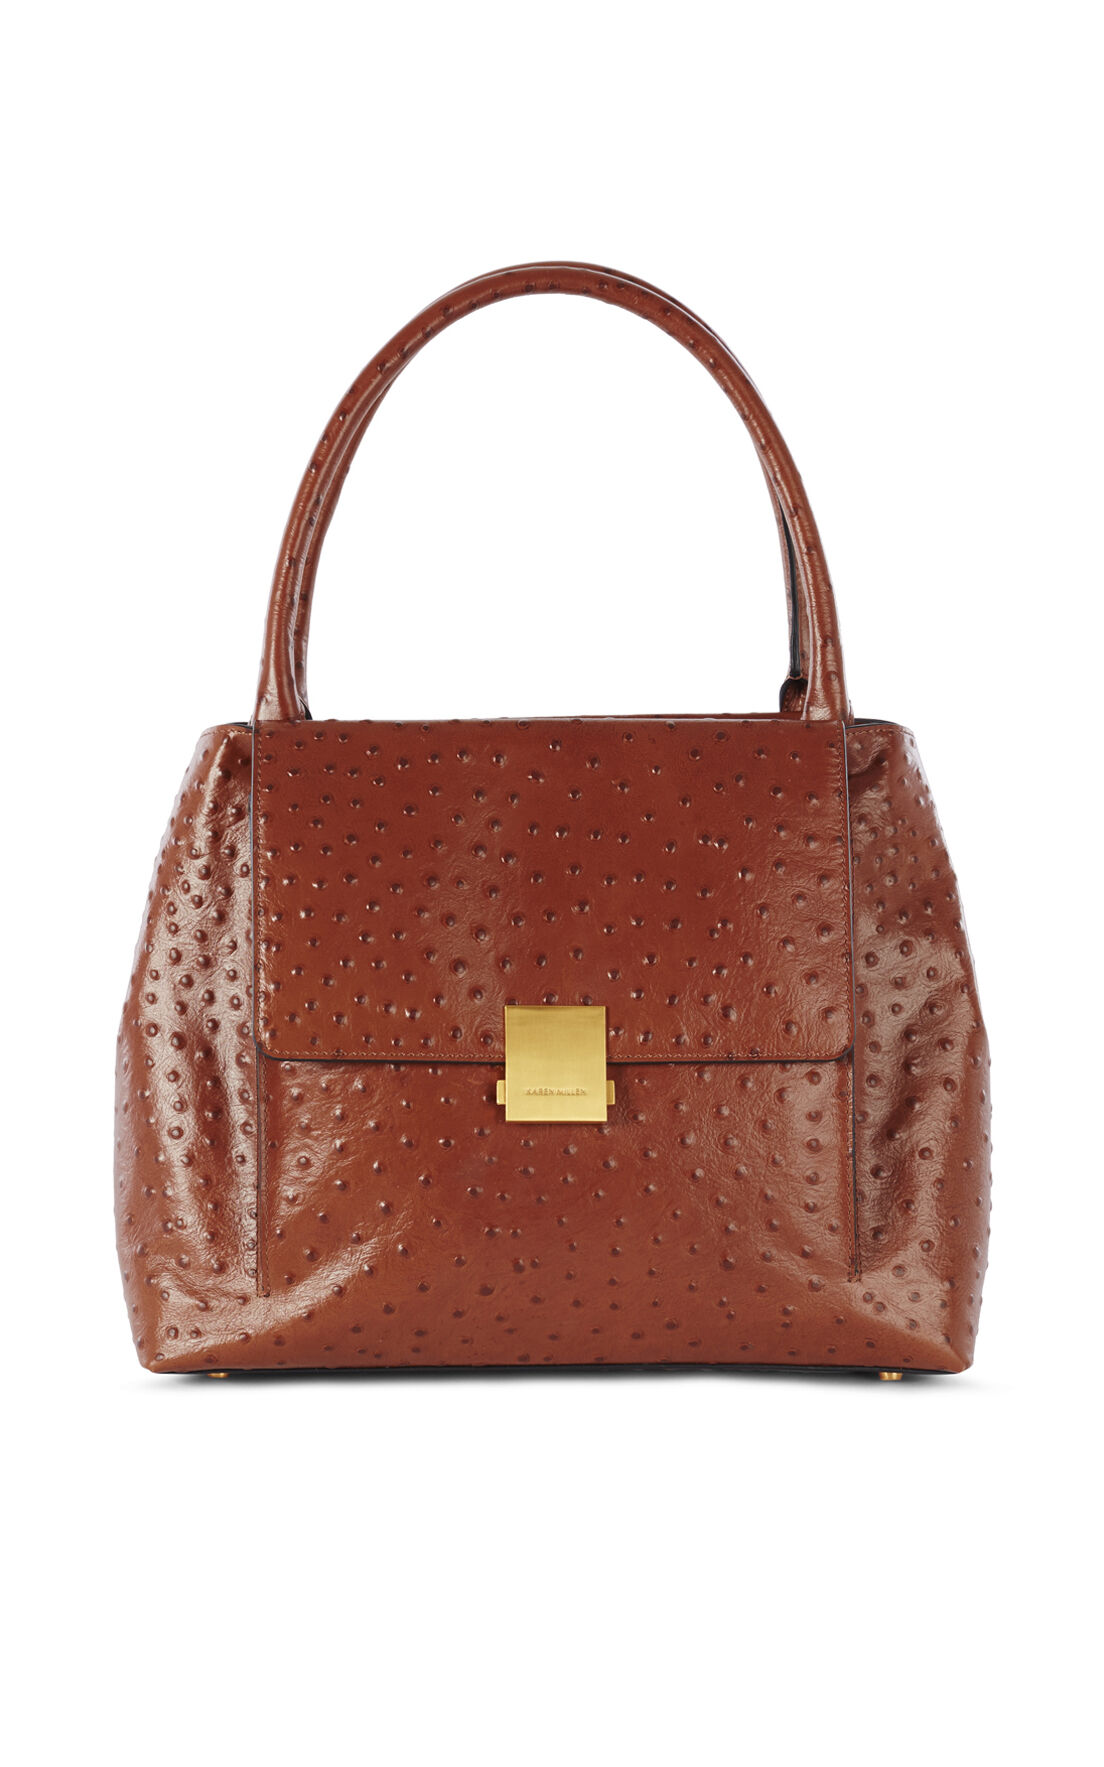 Karen Millen, OSTRICH EMBOSSED BAG Tan 0